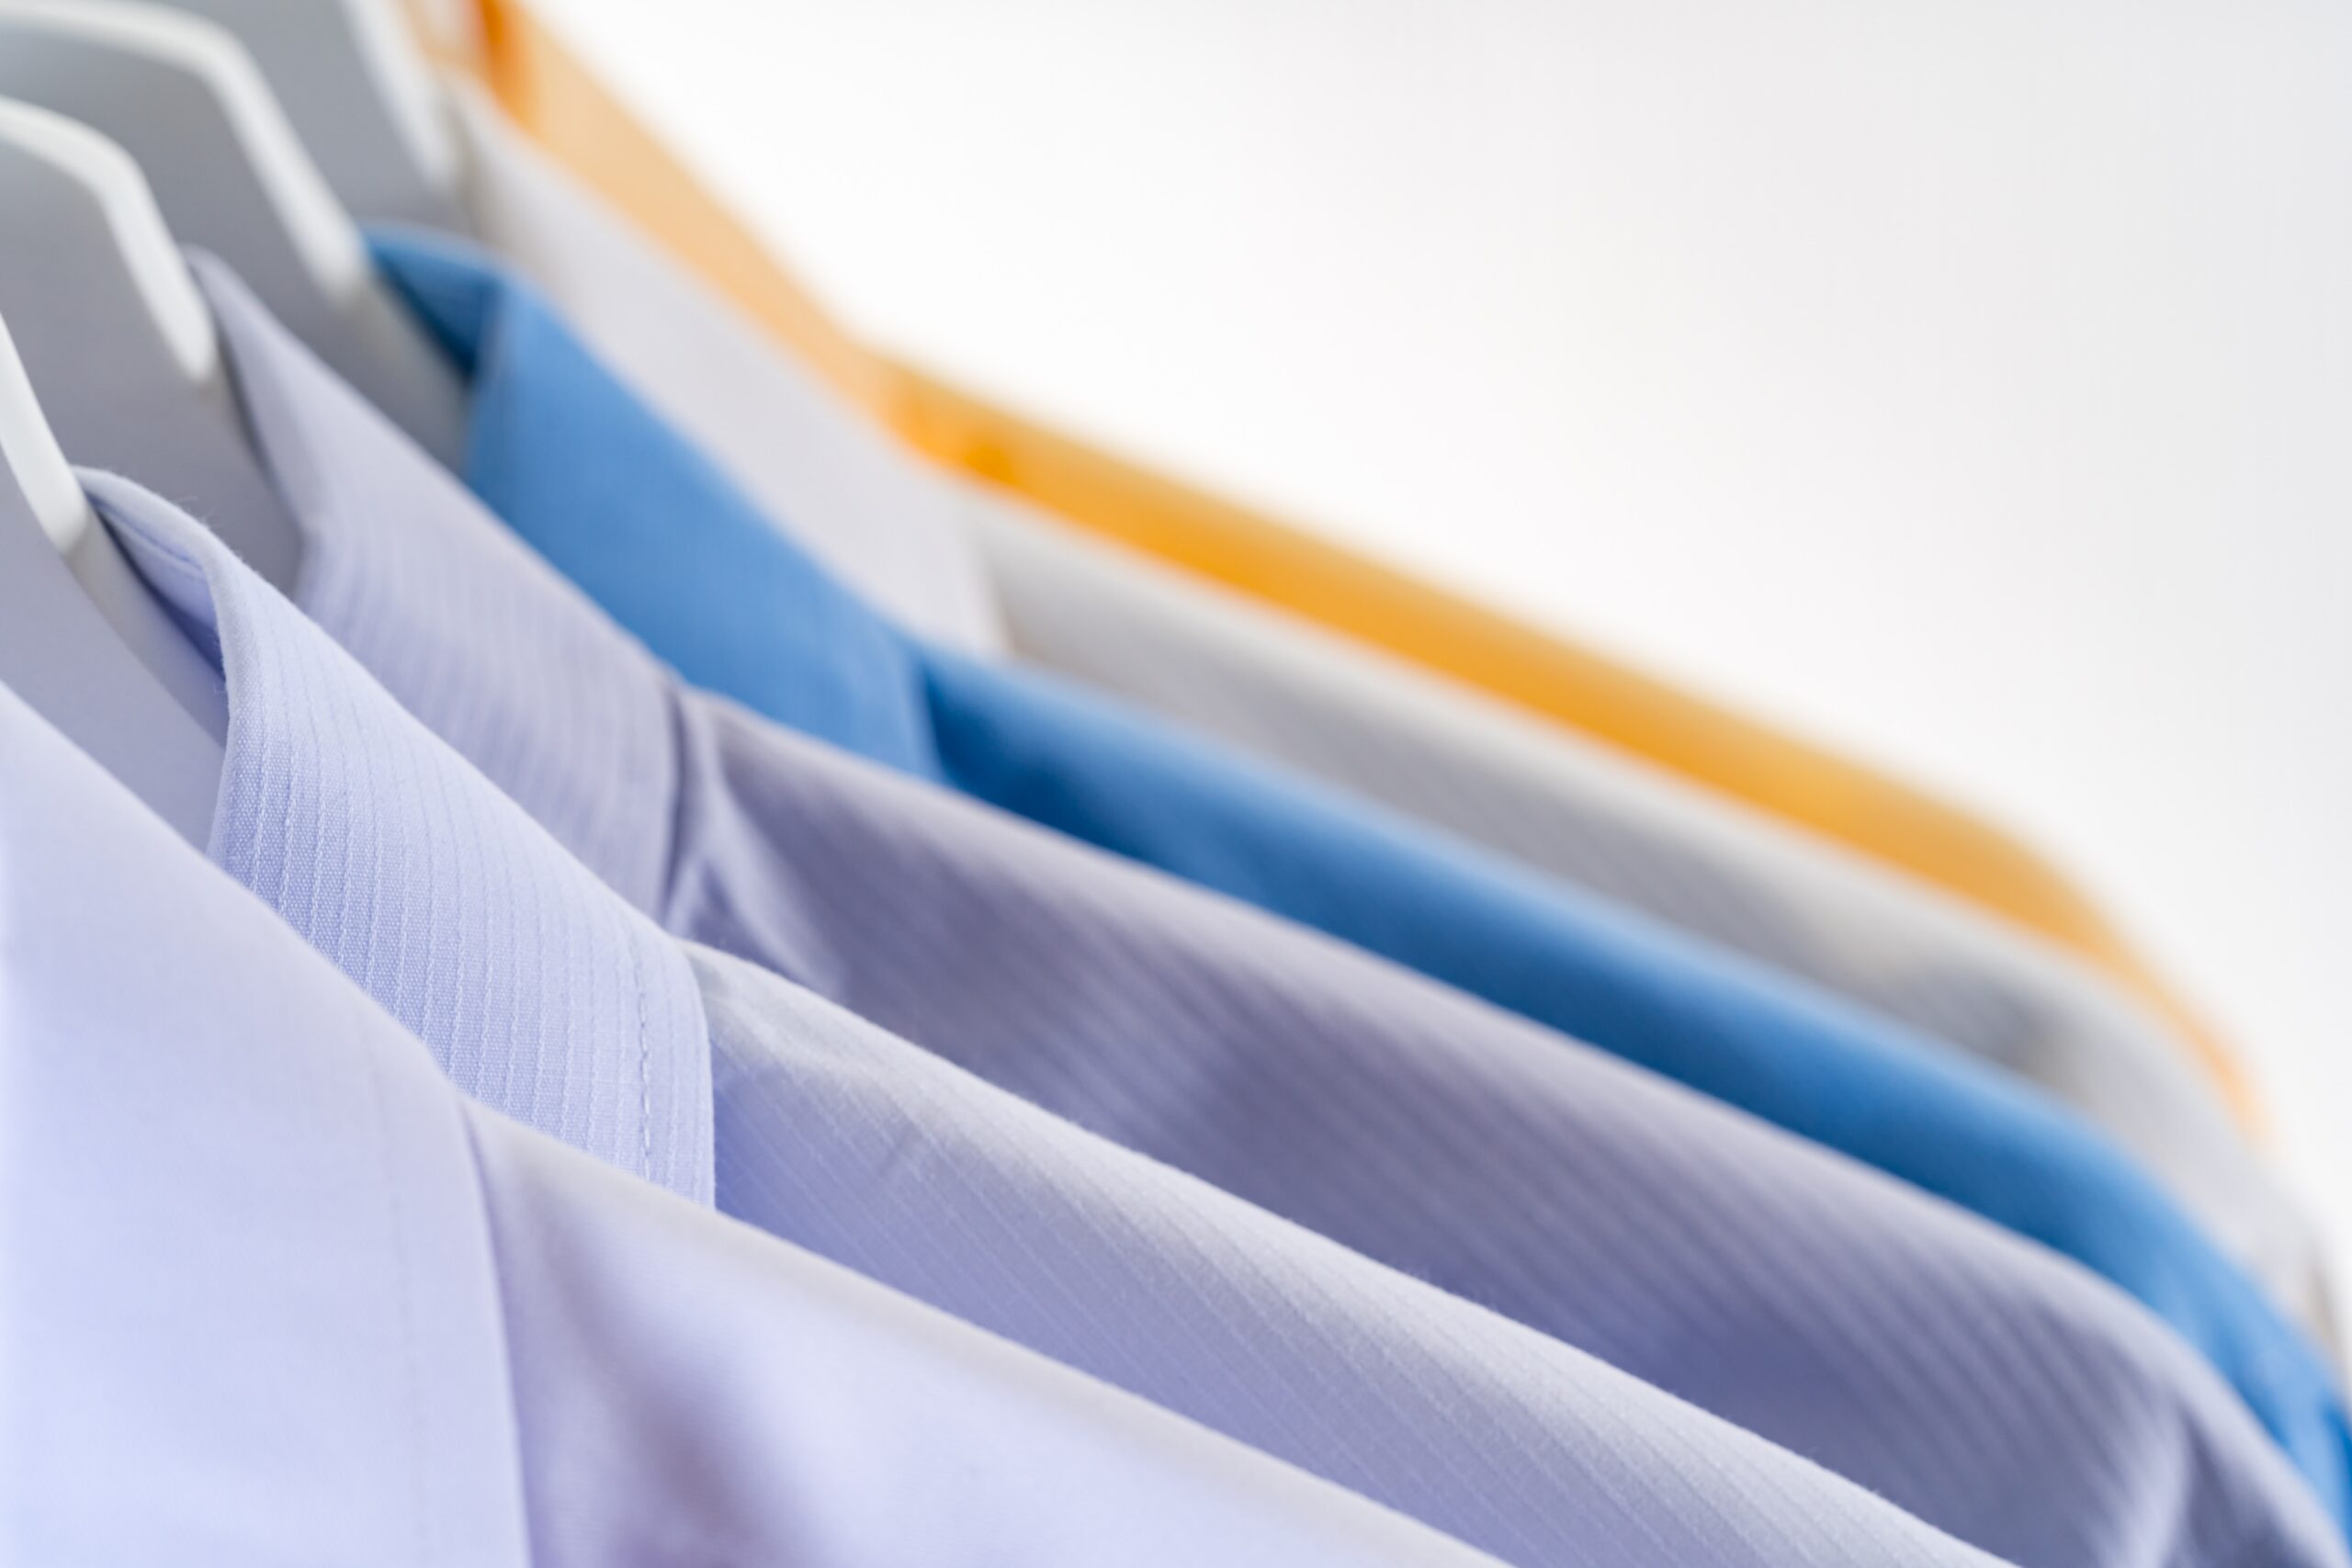 caring for your new shirts